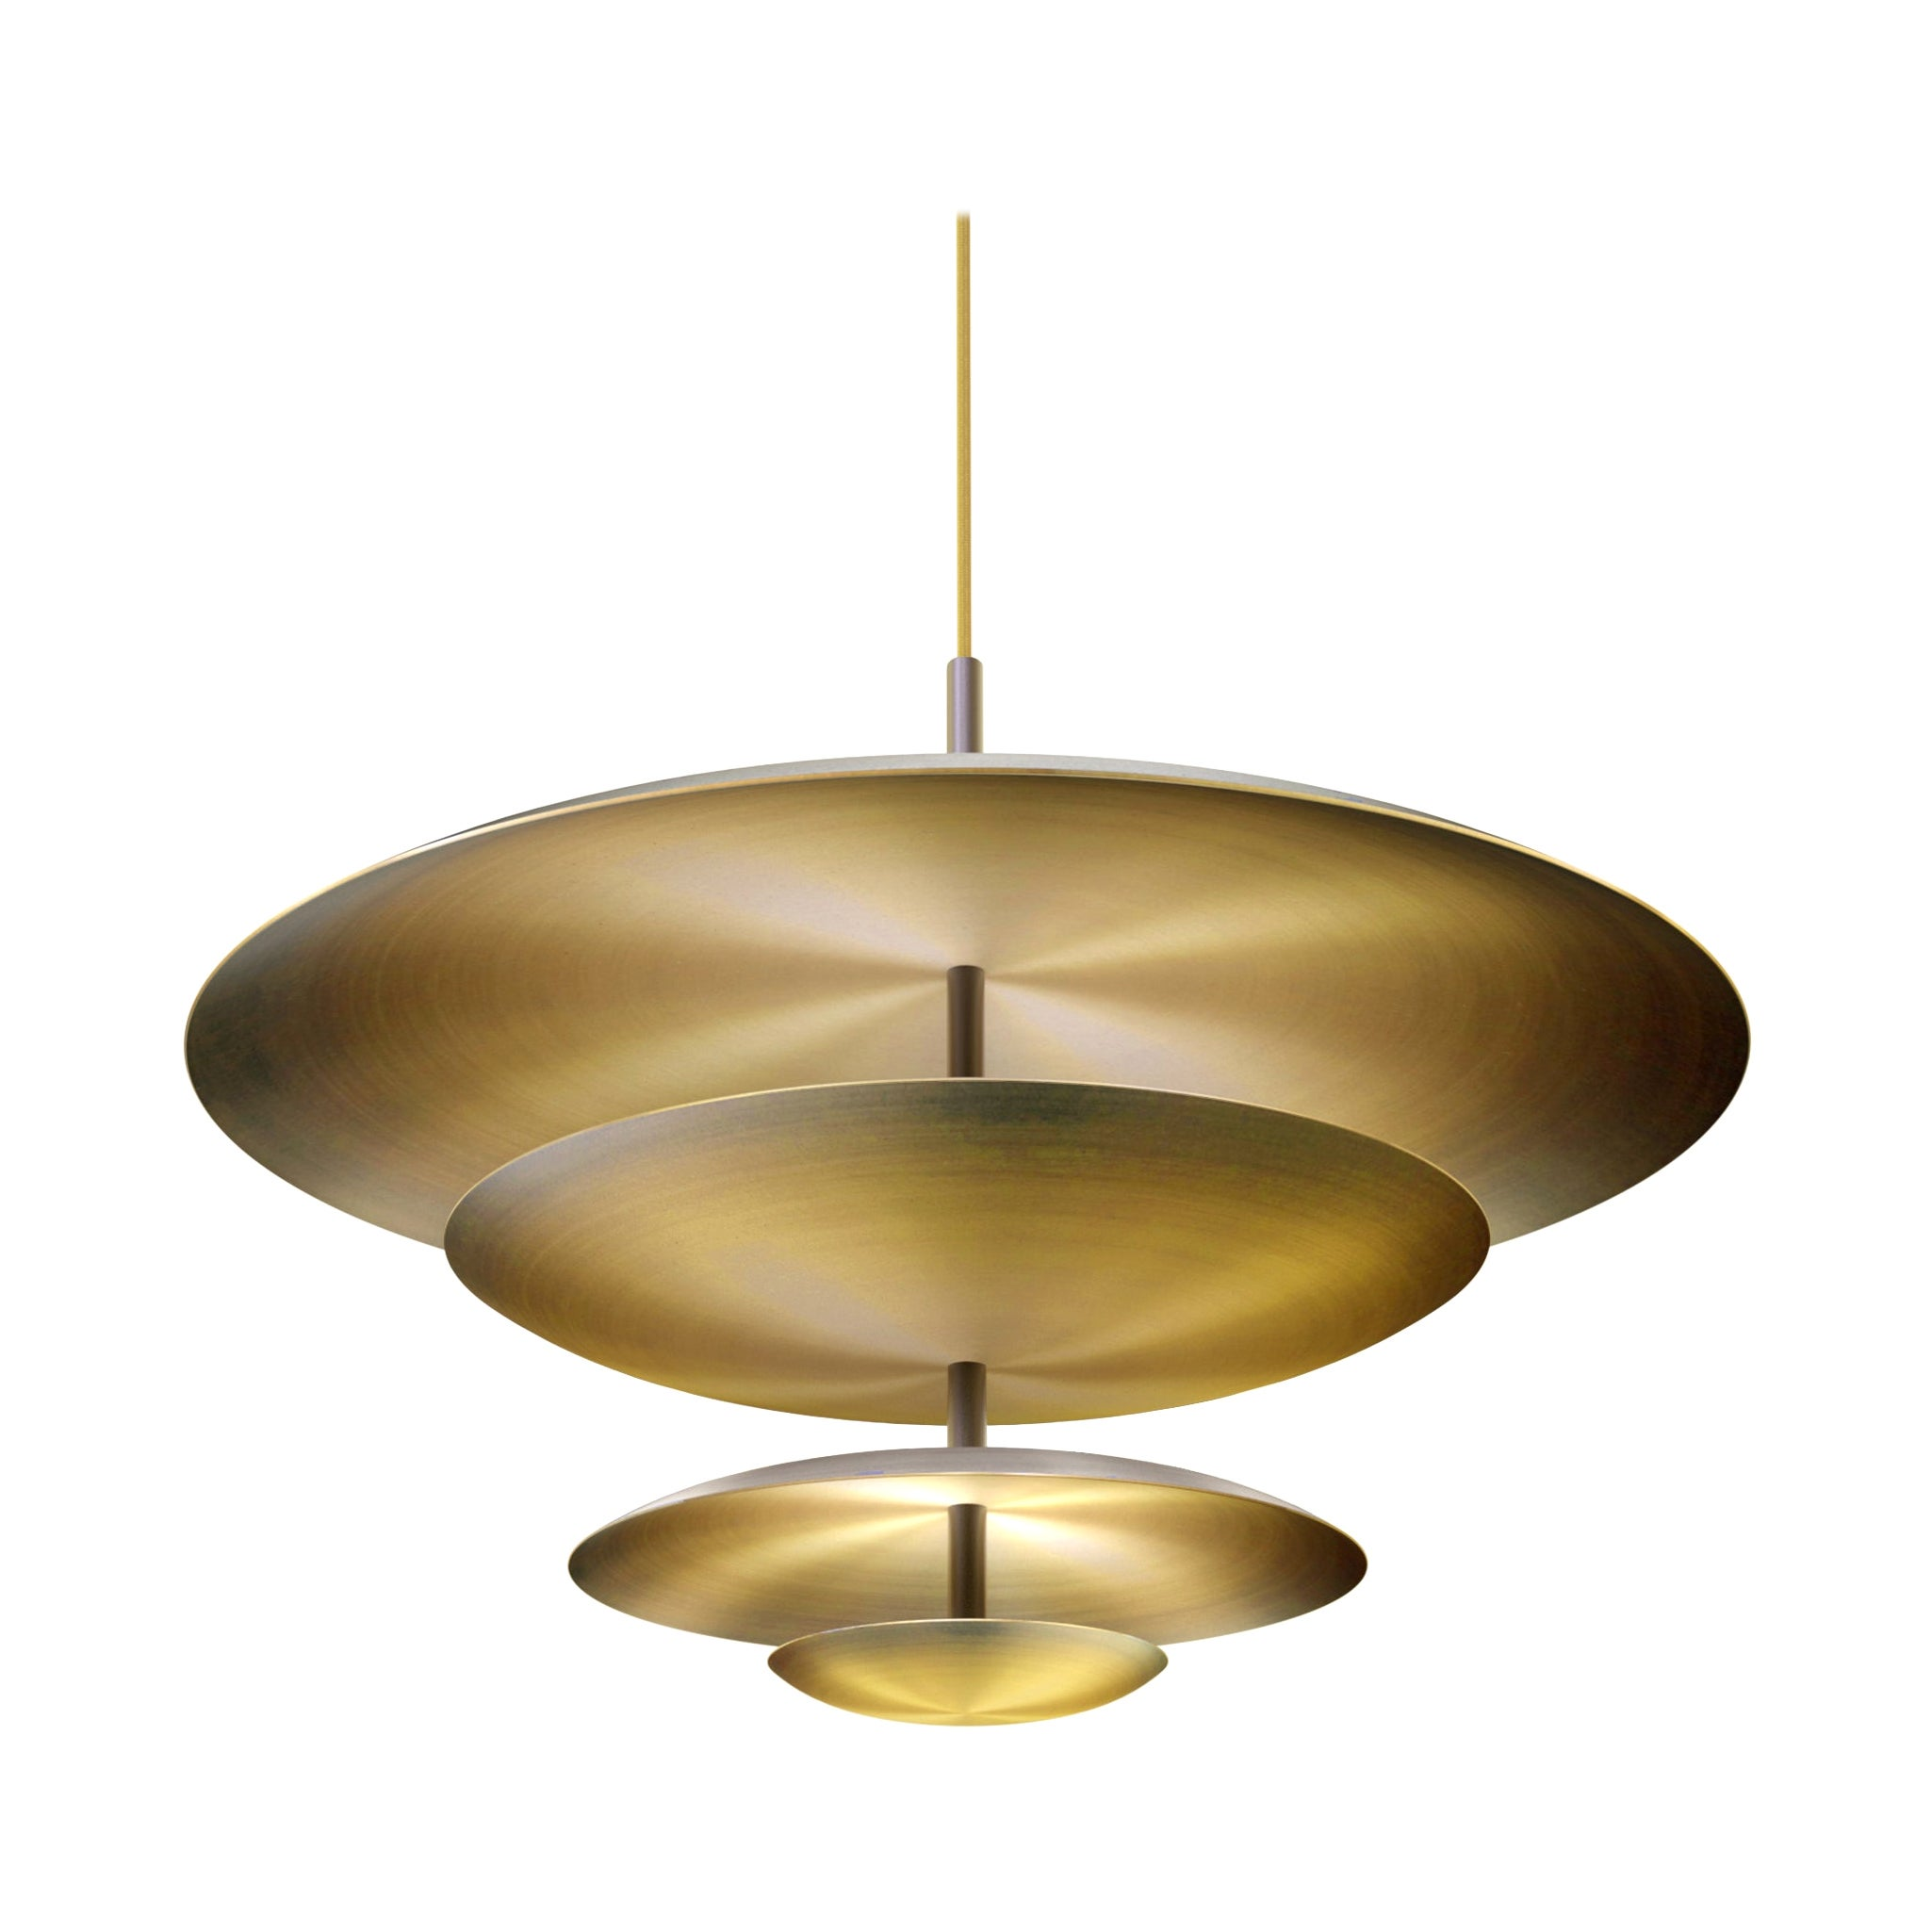 'Cosmic Ore' Chandelier, Pendant Lamp Gradient Patina Brass Large Ceiling Light